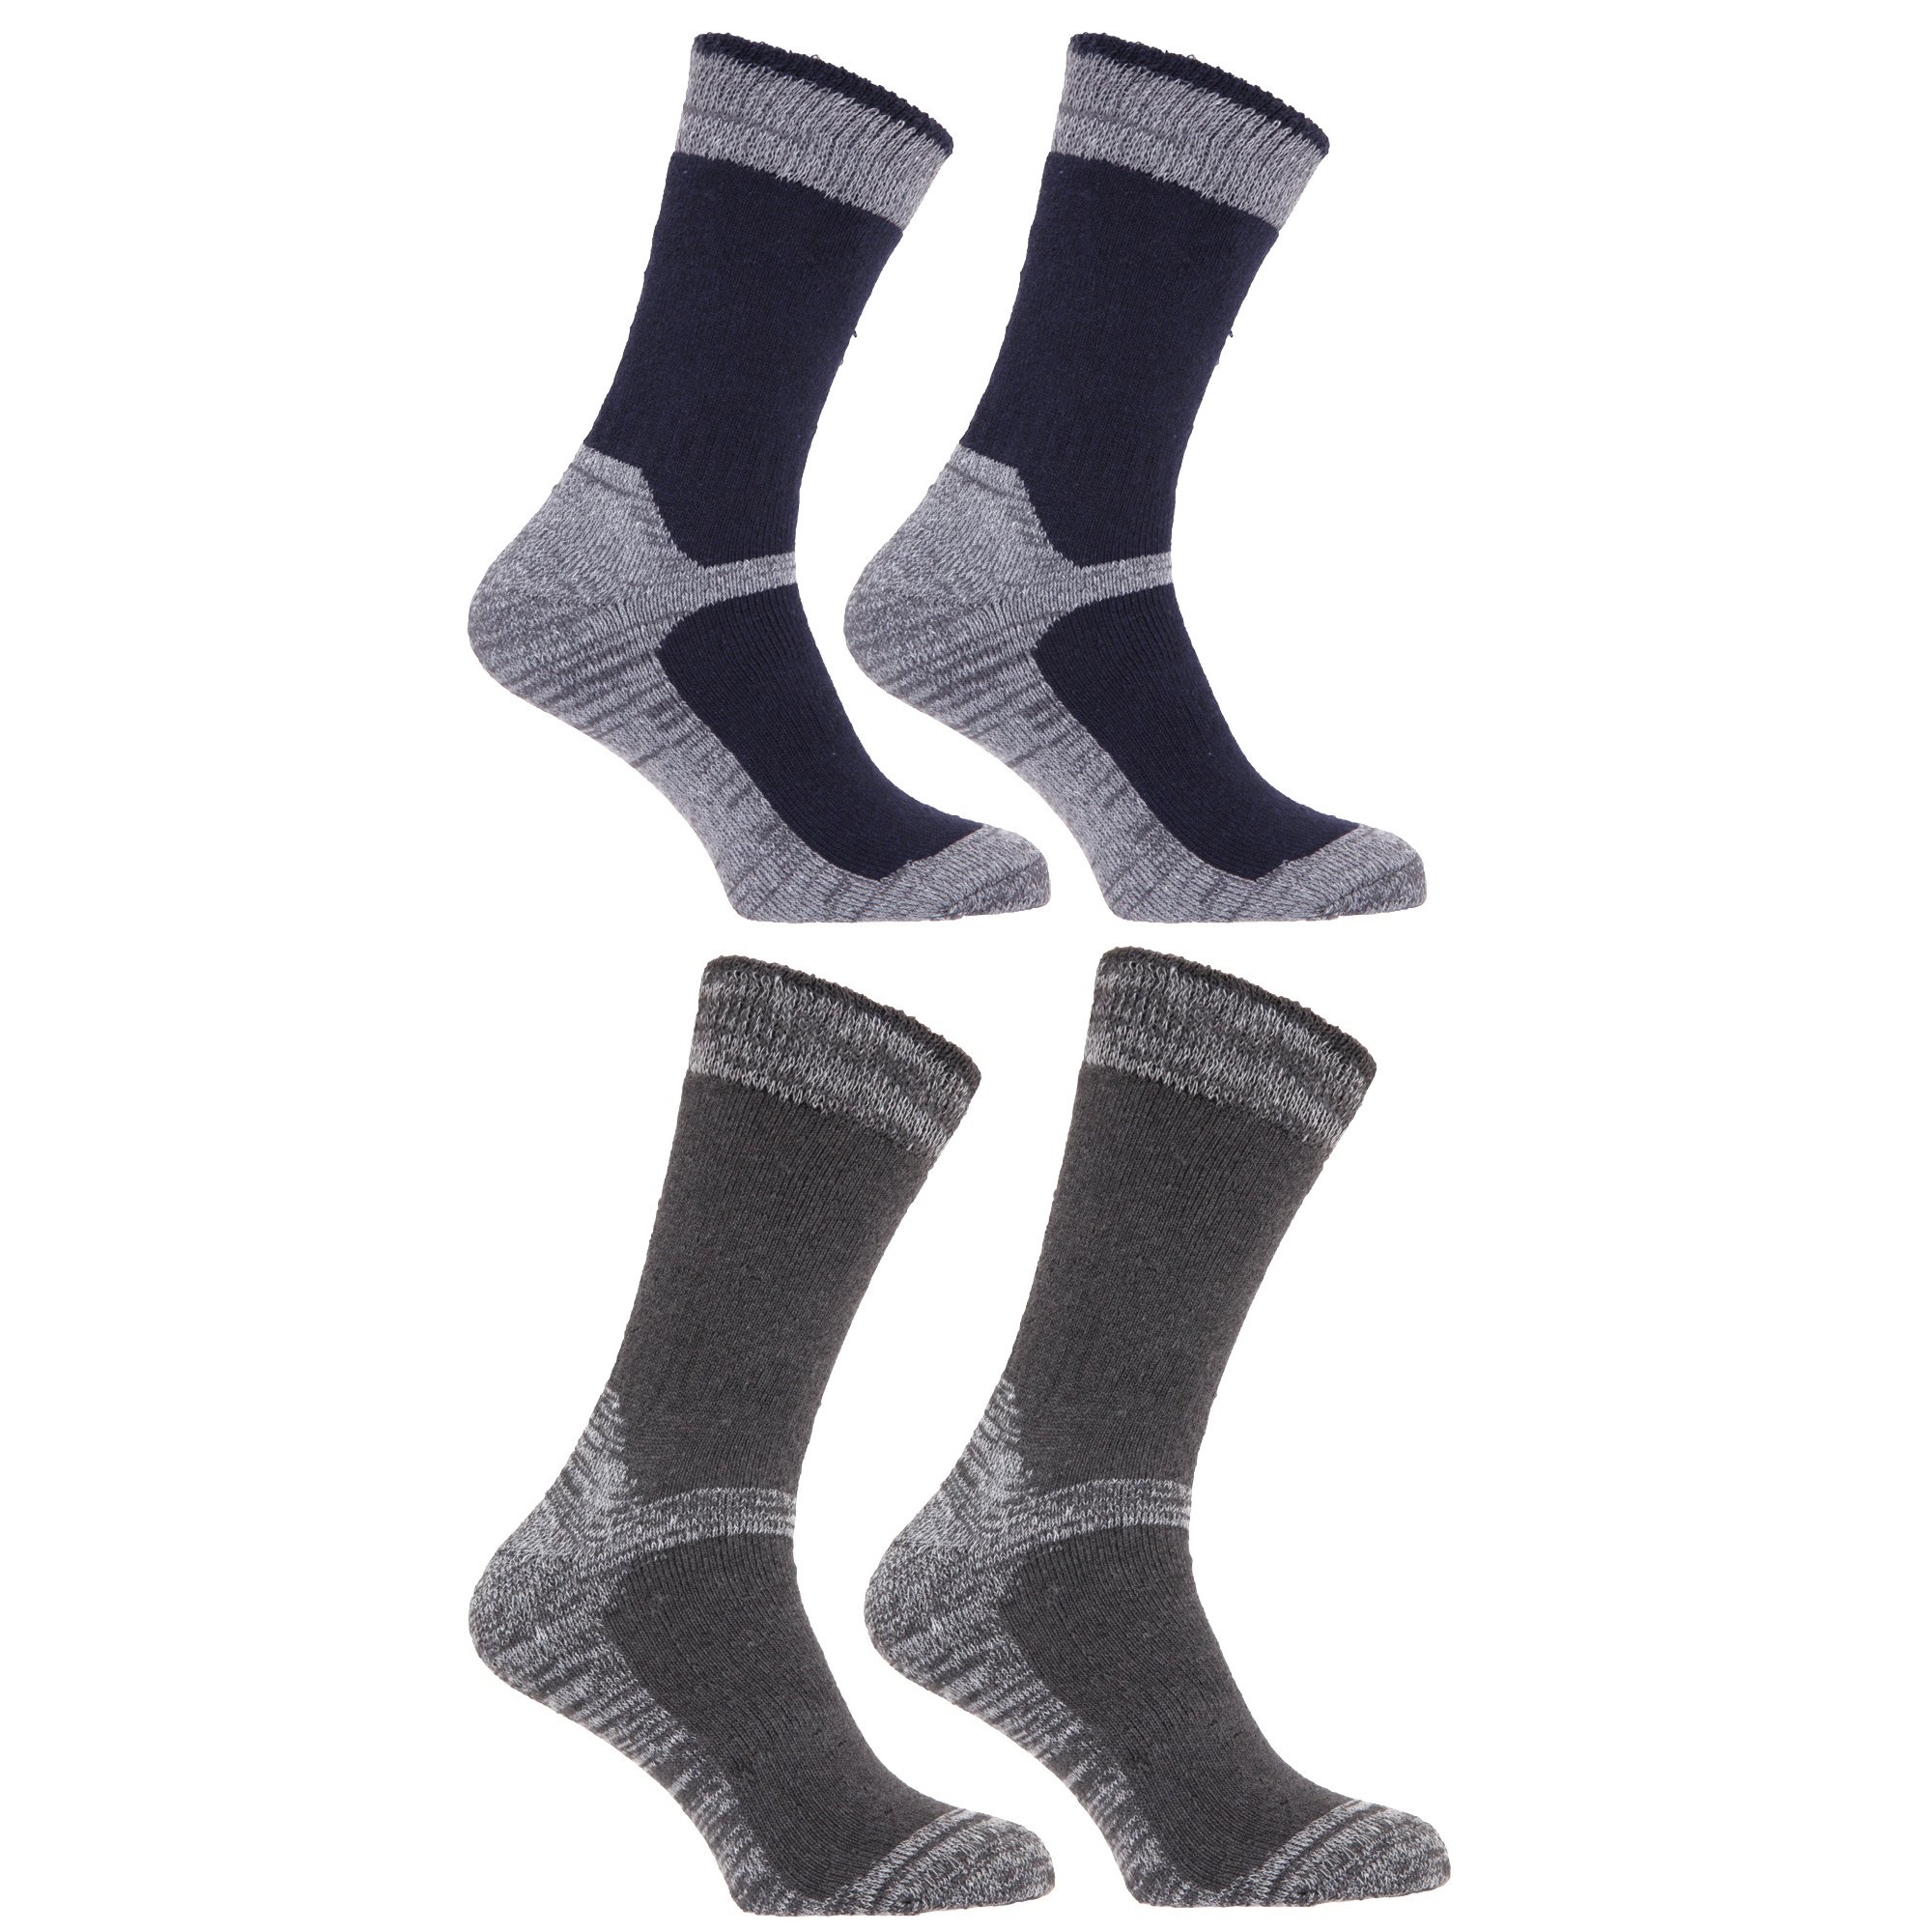 Mens-Heavy-Weight-Reinforced-Toe-Work-Boot-Socks-Pack-Of-4-MB153